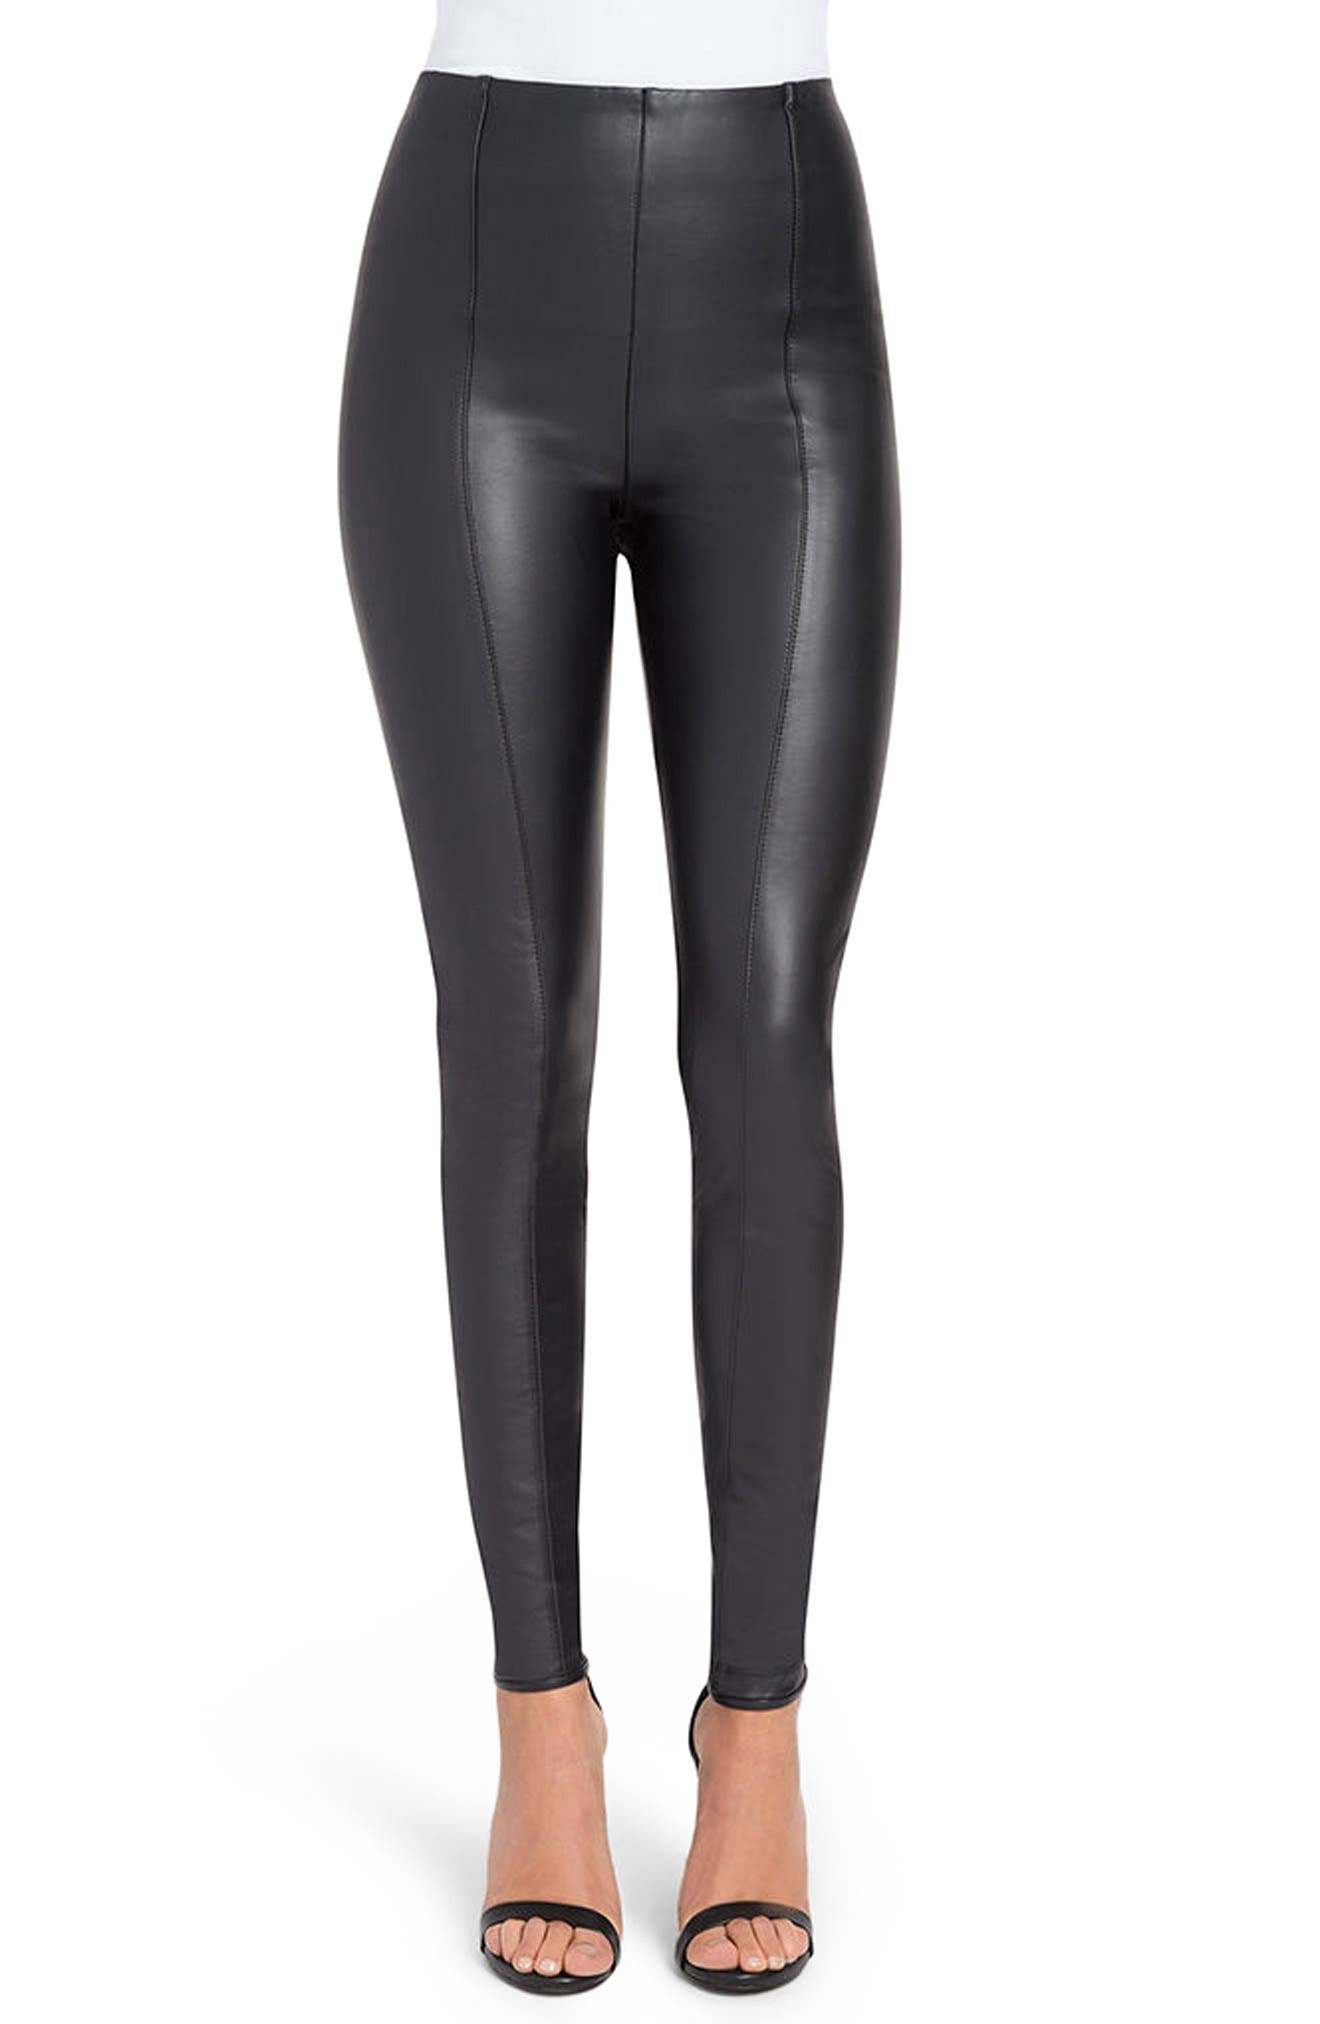 Main Image - Lyssé High Waist Faux Leather Leggings